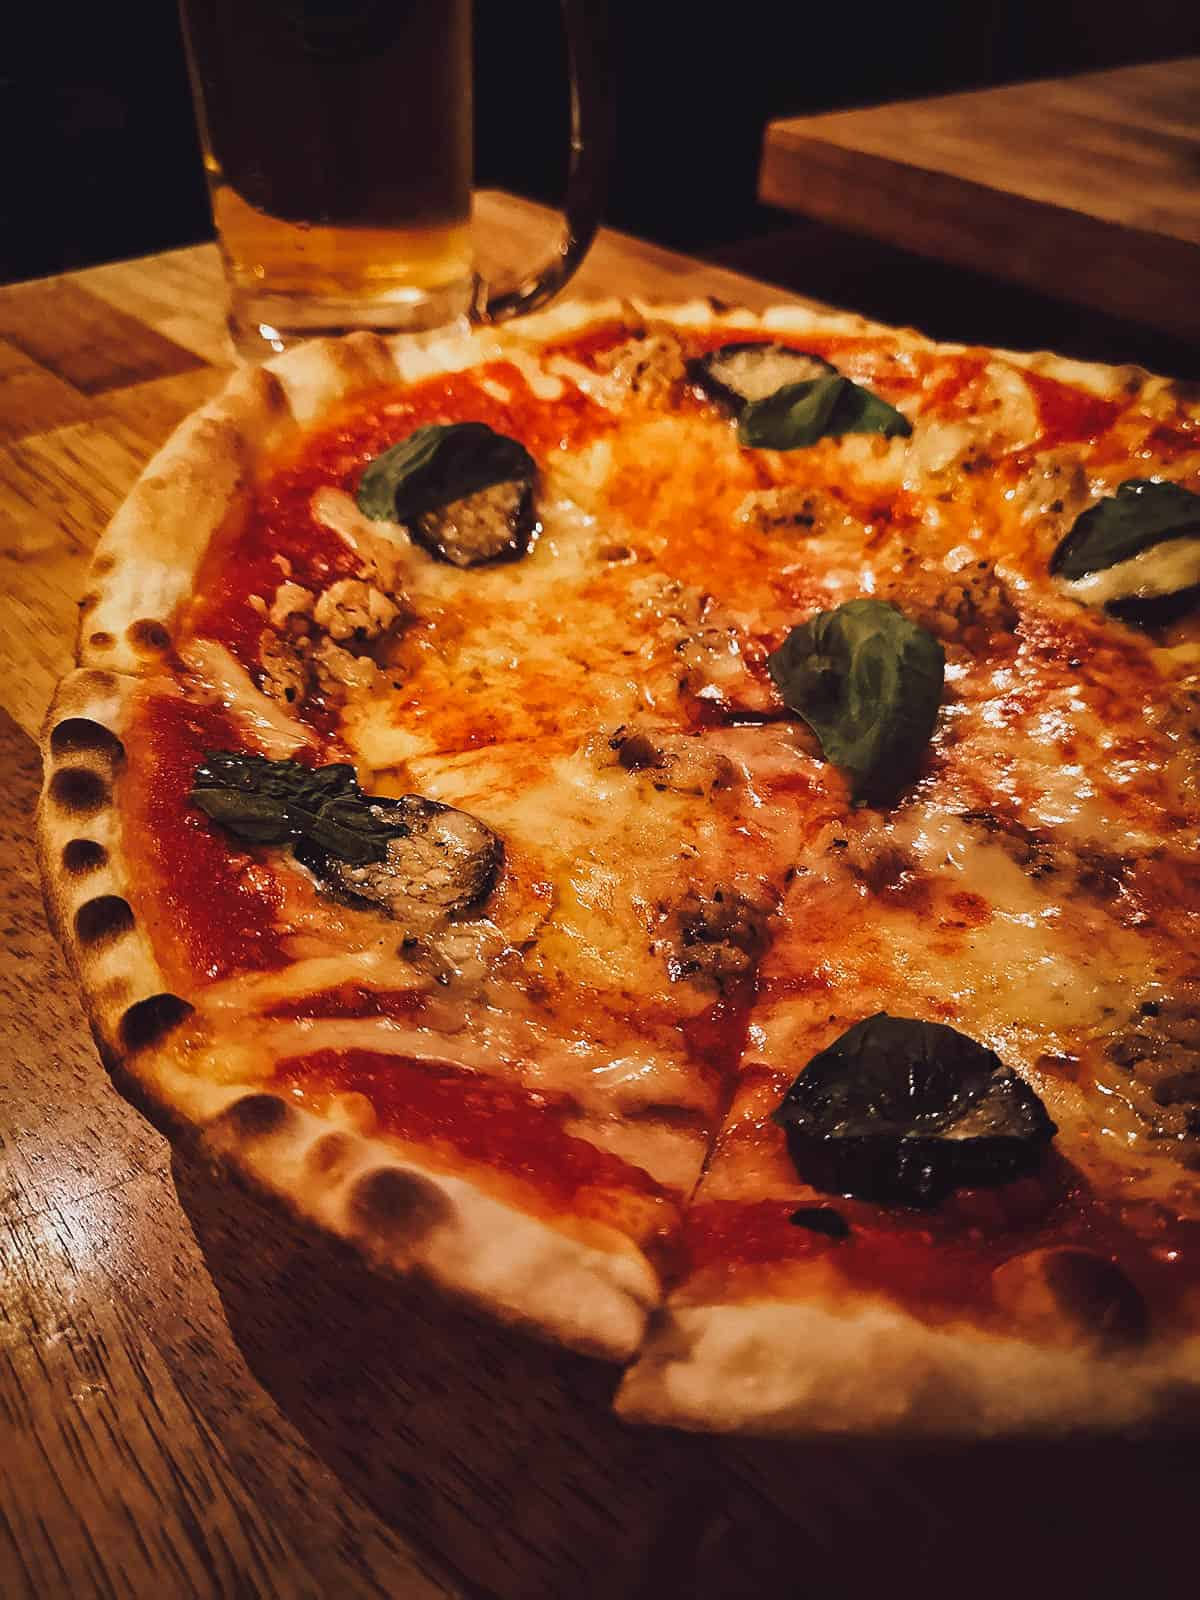 Pizza and beer at Ueno 500 Bar in Tokyo, Japan